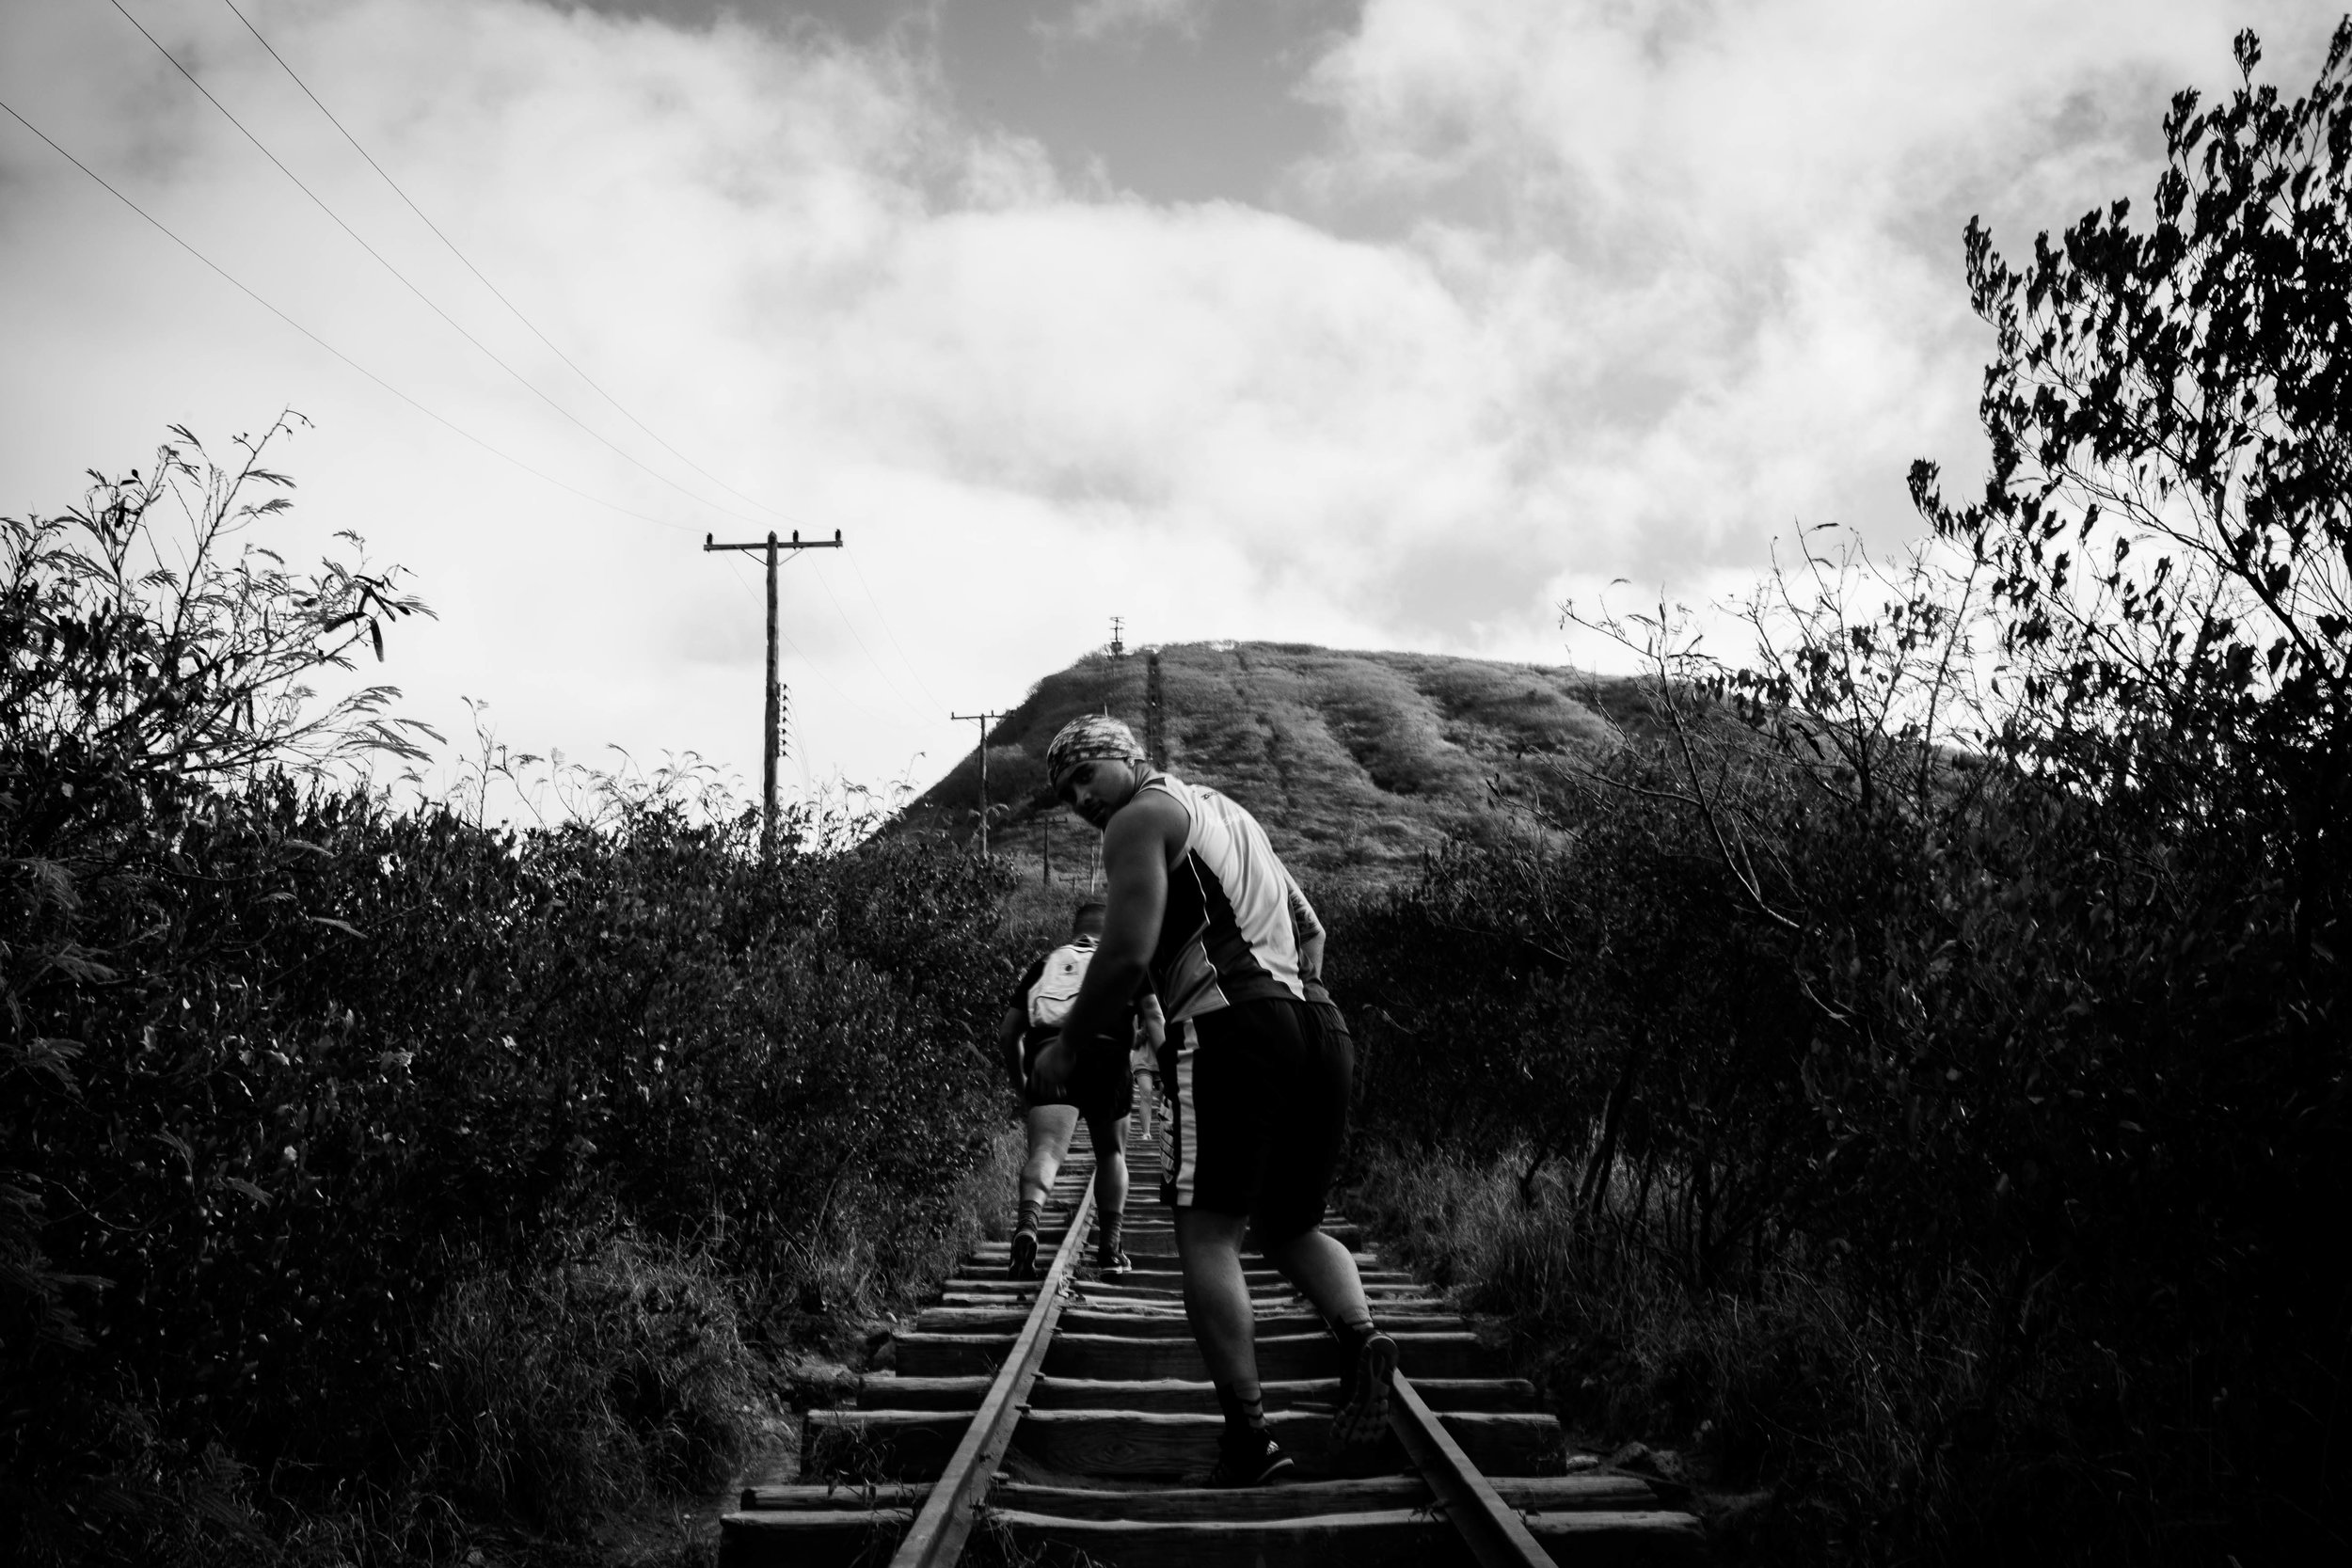 You don't just end up at the top of the mountain. You climb, one foot in front of the other and the other.. Next thing you know, you've made it to the top. Koko Crater track, Oahu.